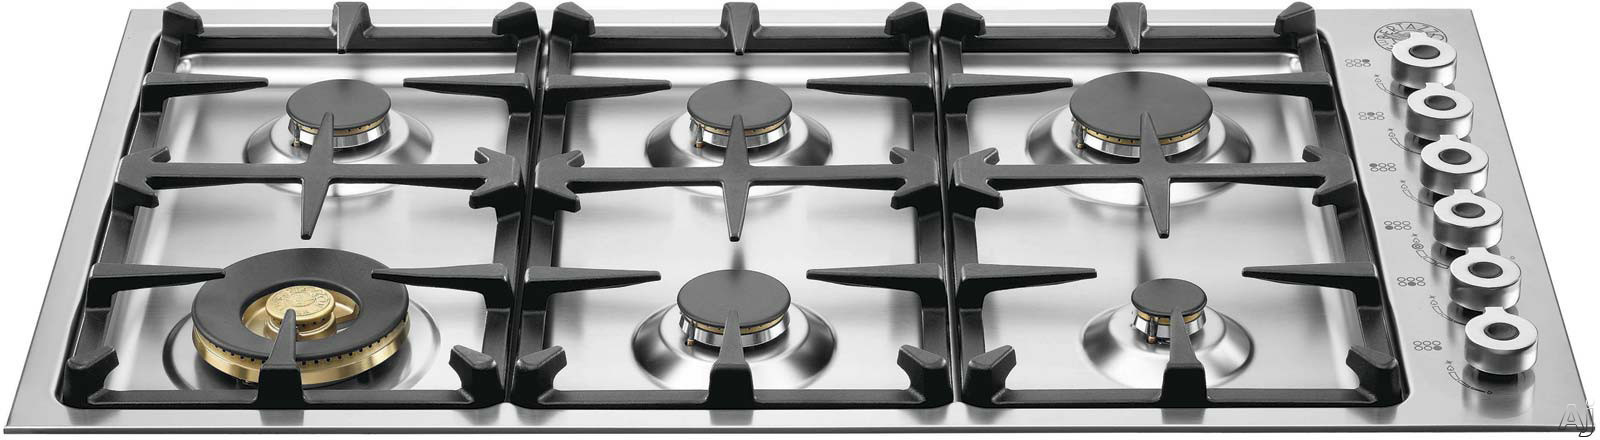 Bertazzoni Professional Series QB36600 36 Inch Gas Cooktop with 6 Sealed Burners, 18,000 BTU Brass Power Burner, Continuous Grates, Electronic Ignition and Low Profile Borders